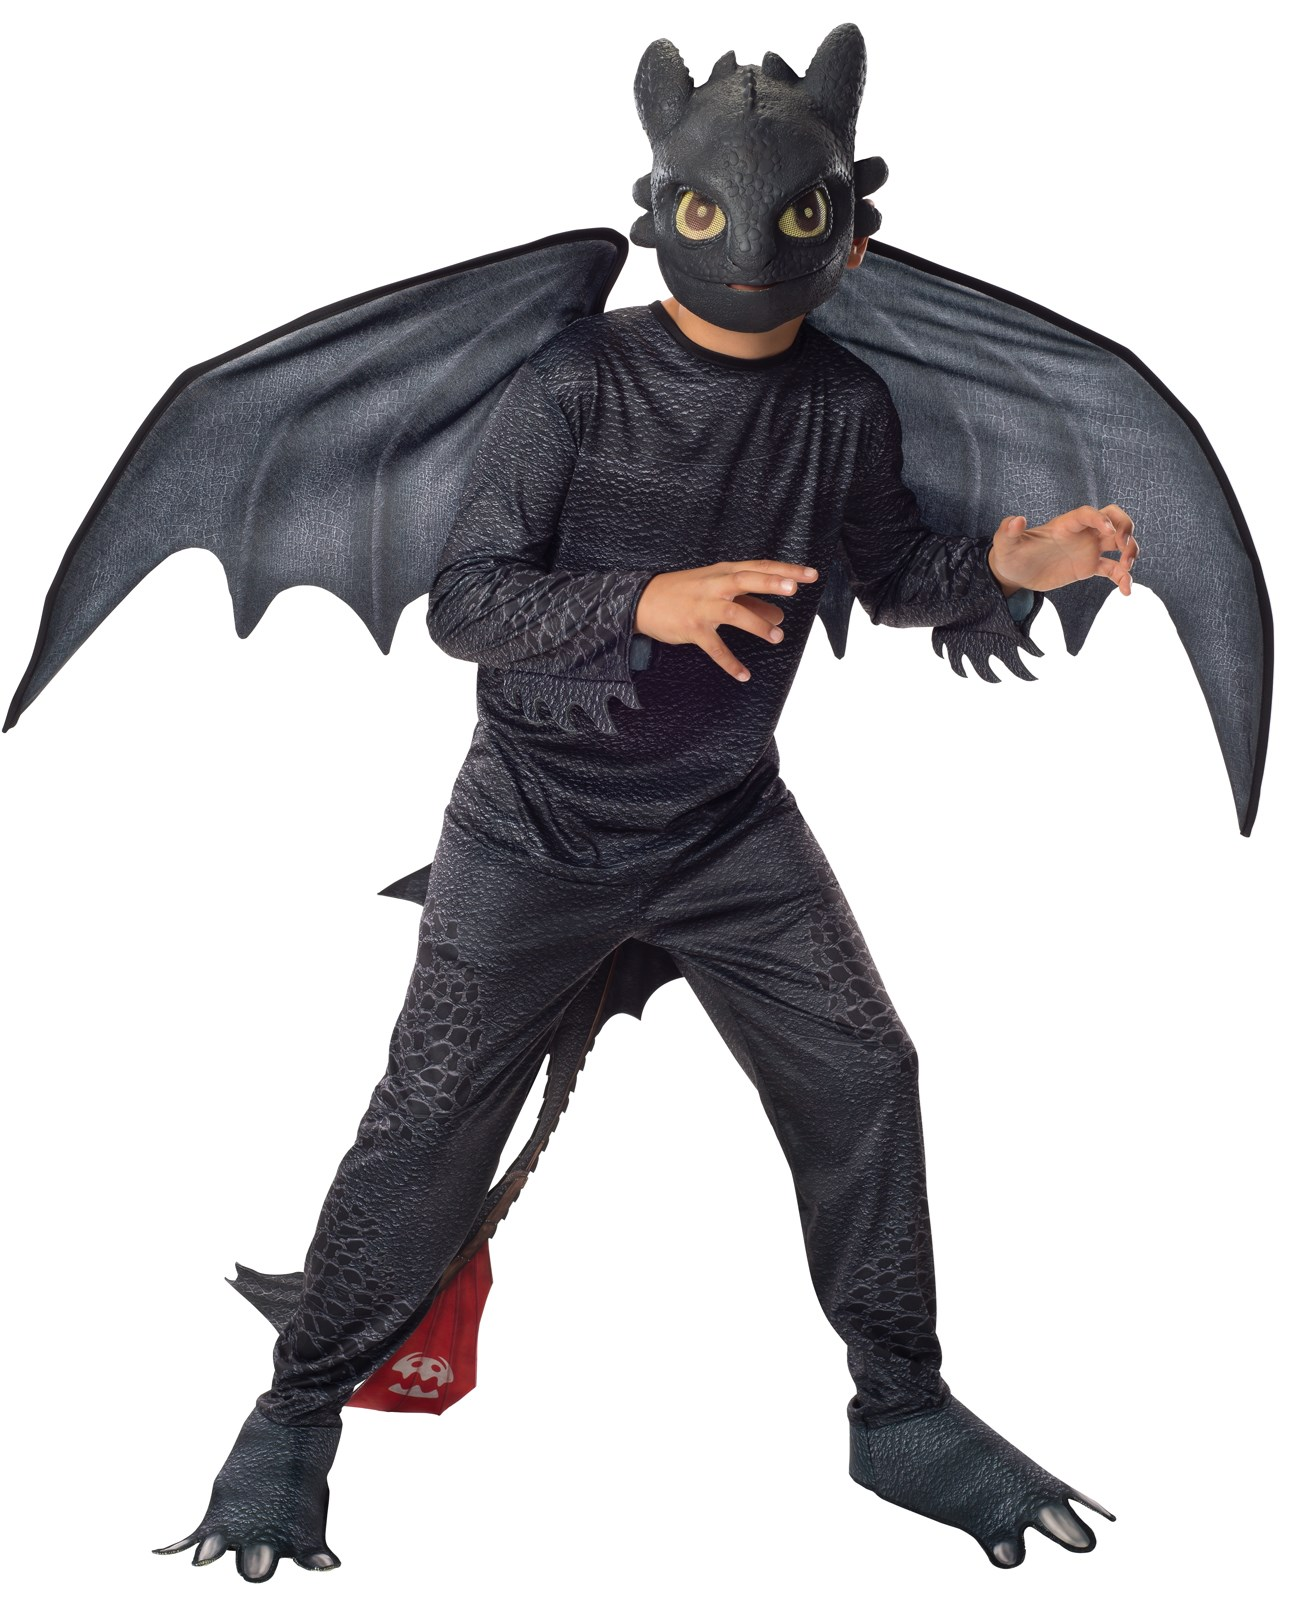 How to Train Your Dragon 2 - Night Fury Toothless Child Costume Small (4-6)